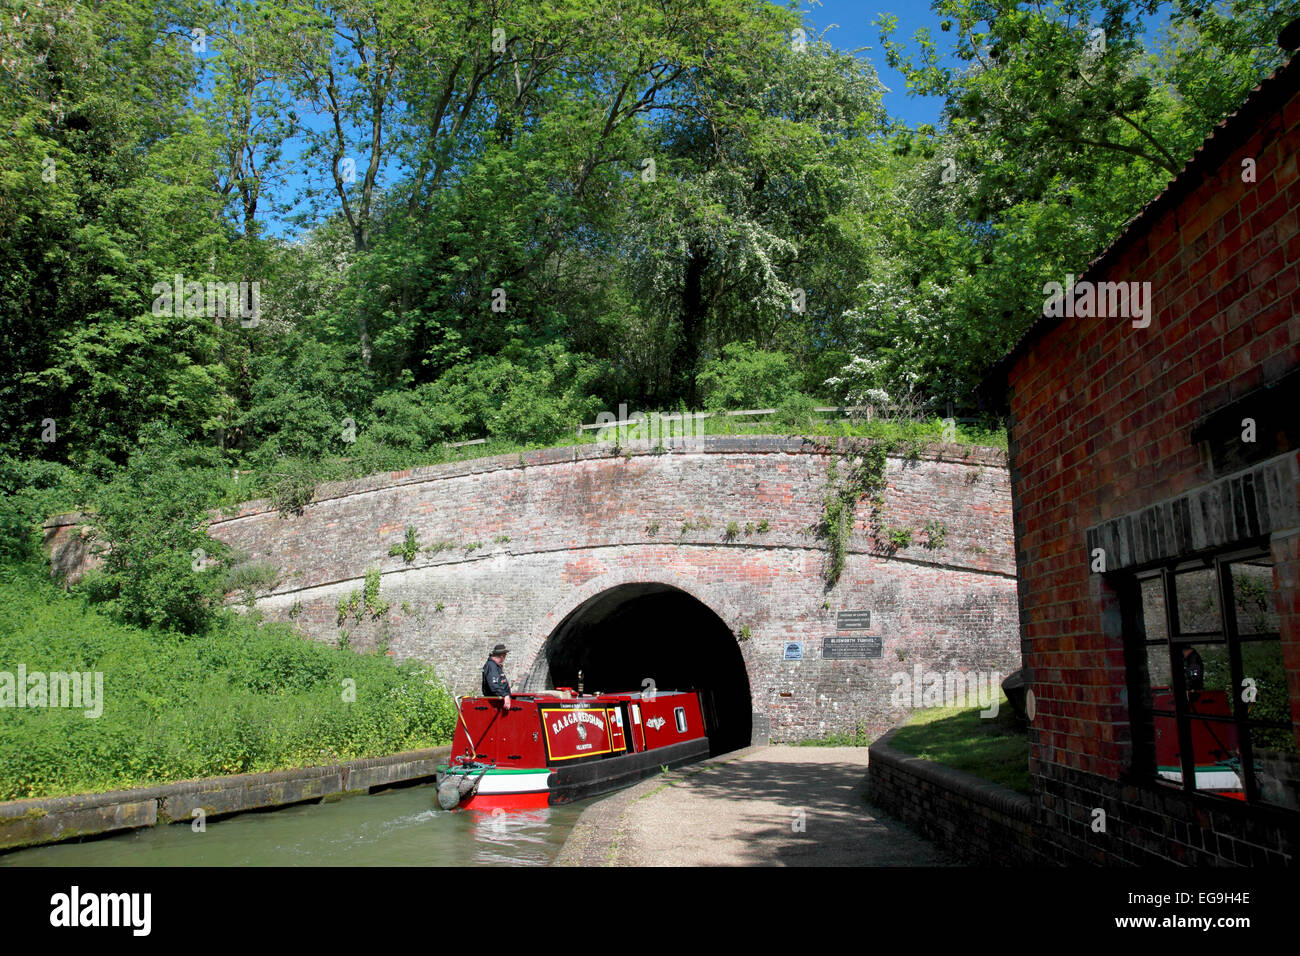 A narrowboat entering the southern portal of Blisworth Tunnel on the Grand Union Canal at Stoke Bruerne, Northamptonshire - Stock Image